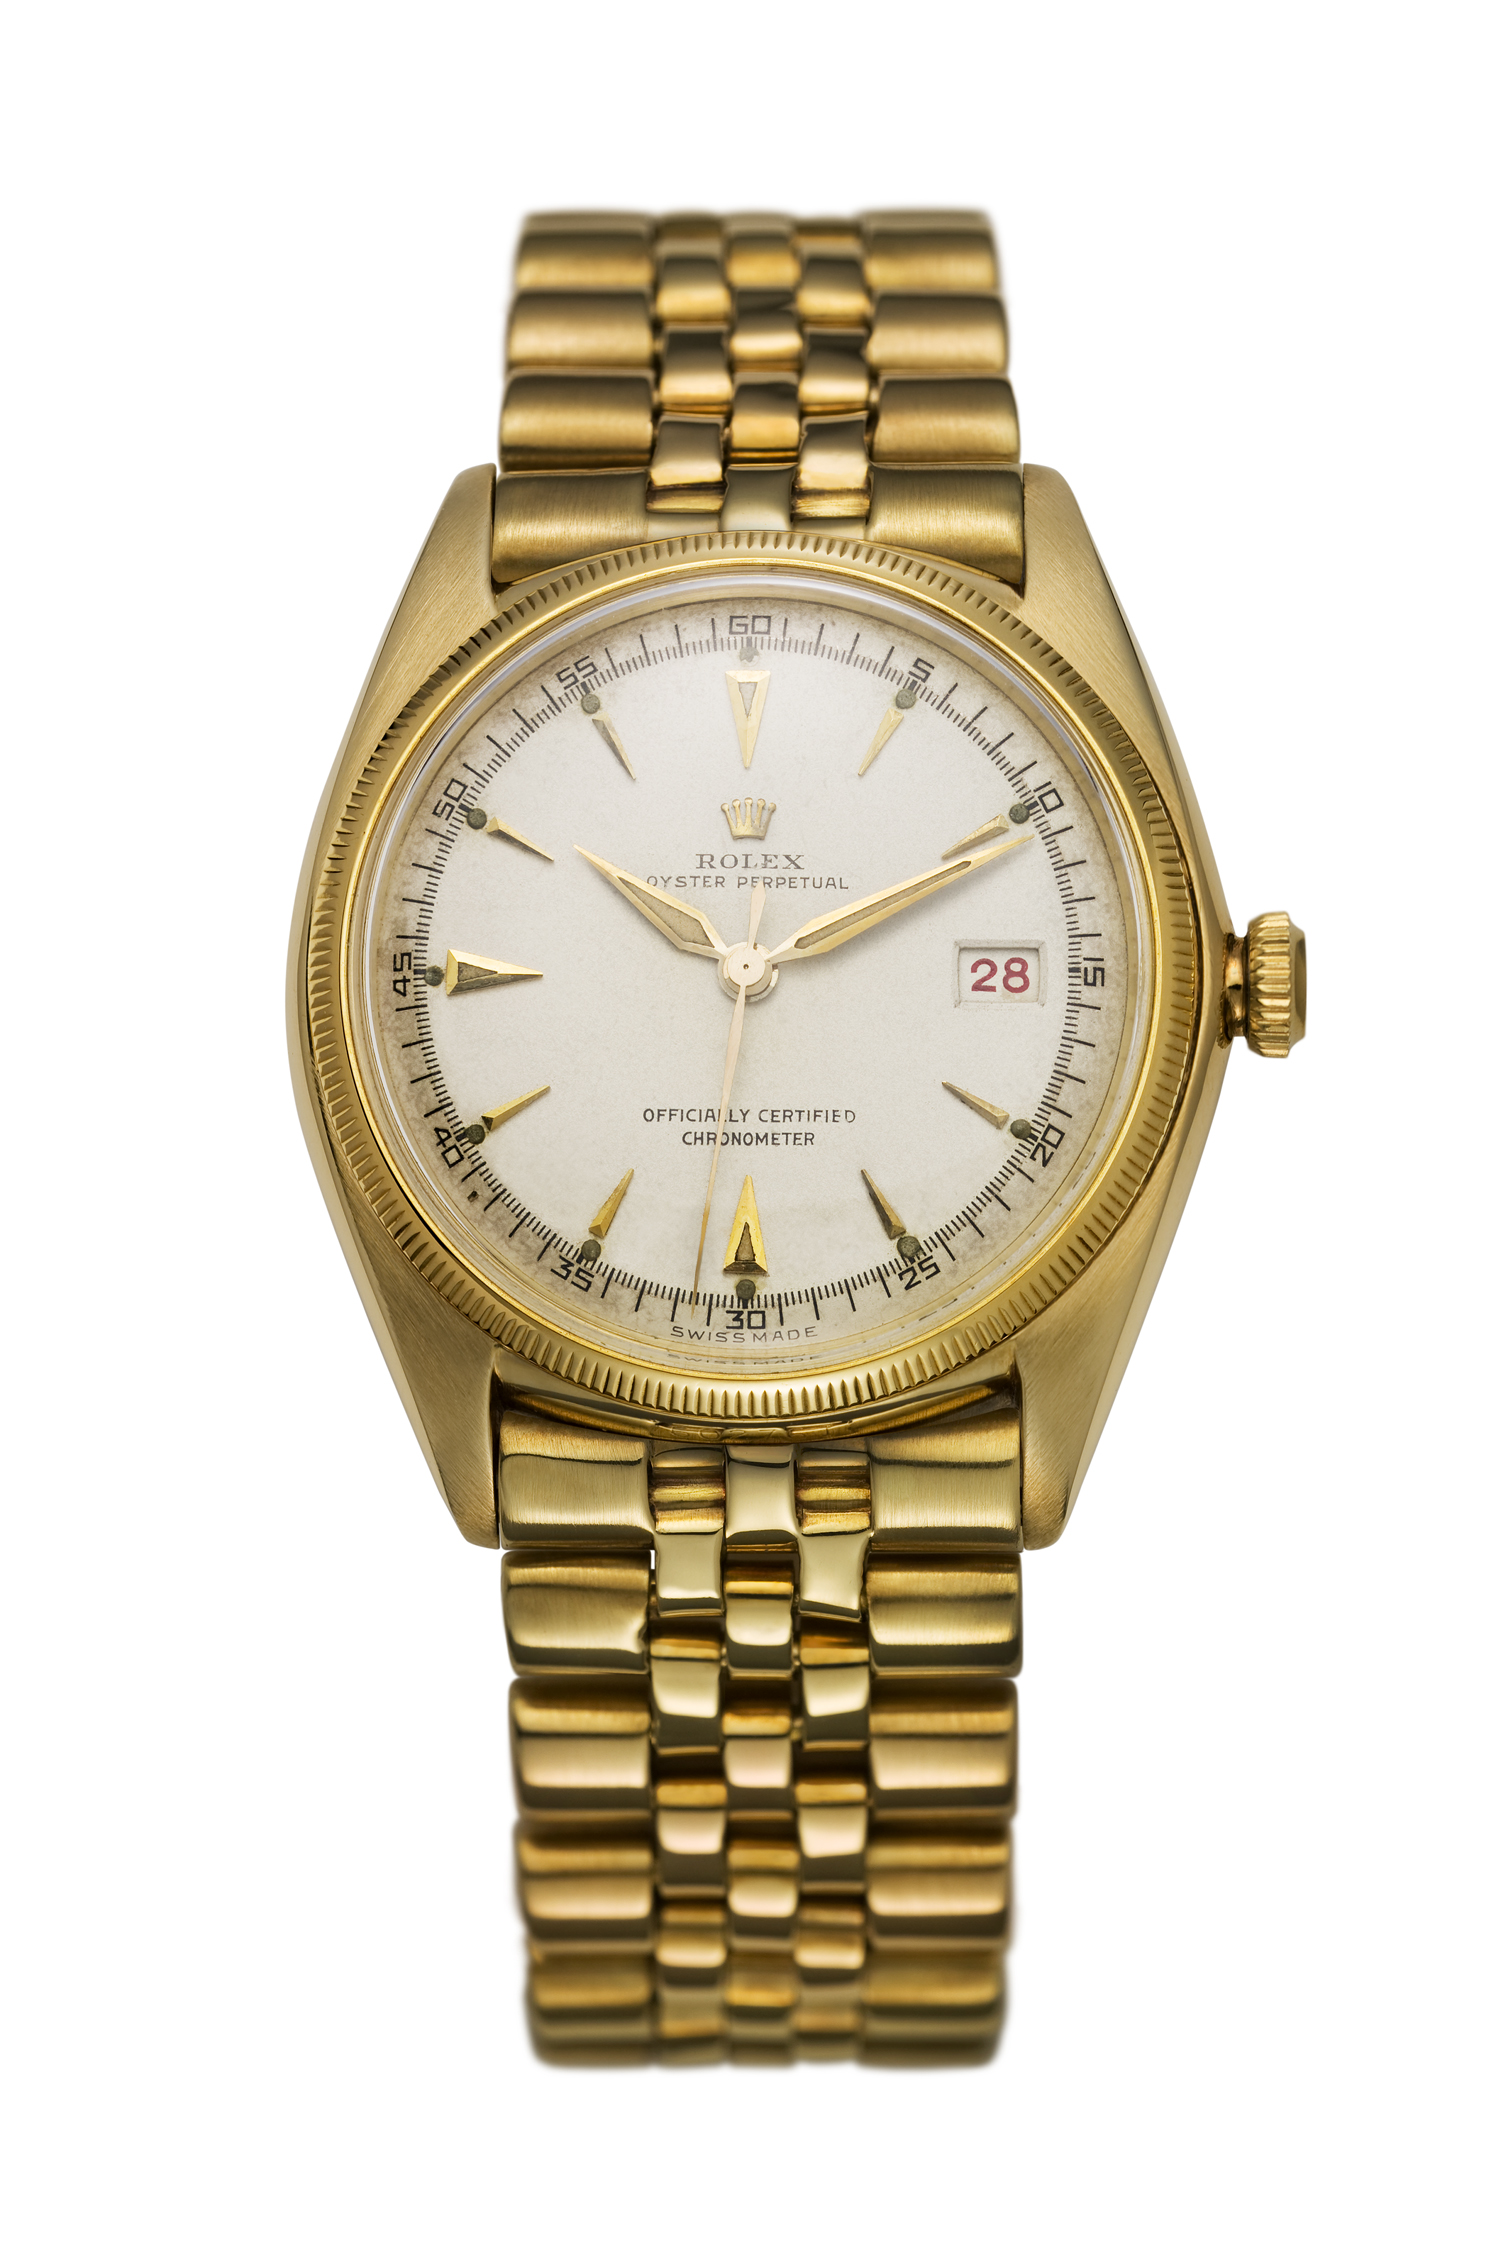 Iconic Watches Of The Century  The Most Important Rolex. Cats Rings. Prasiolite Engagement Rings. Anklet Design. Eternal Bands. Beaded Bangle Bracelet. Wedding Bands For Women. Steampunk Pendant. Top Online Jewelry Stores